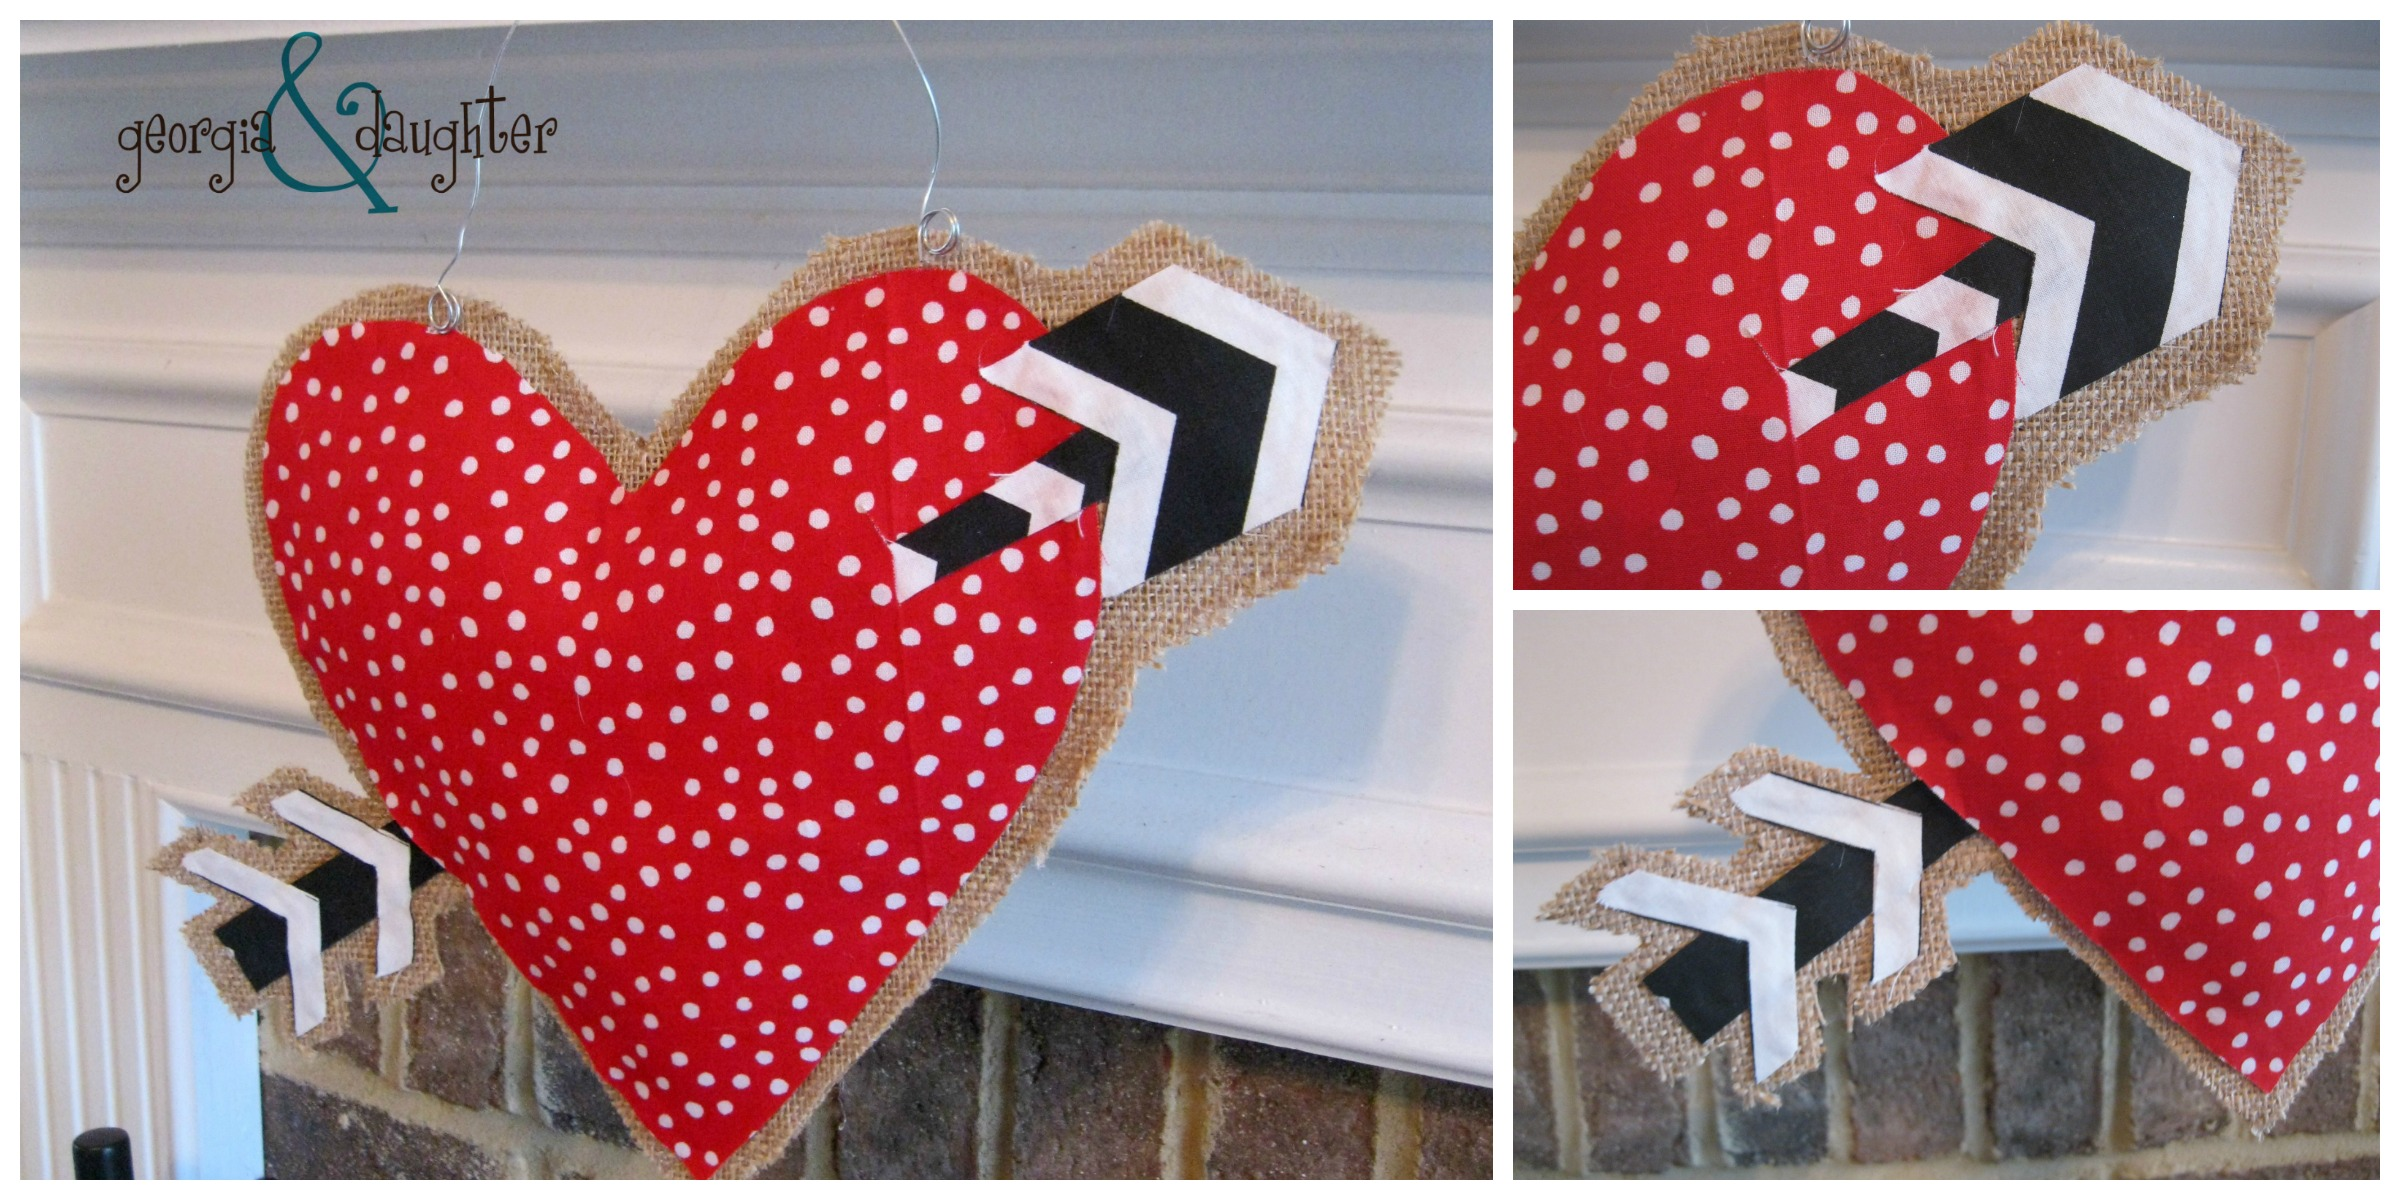 georgia & daughter: DIY Burlap Heart Door Hanger